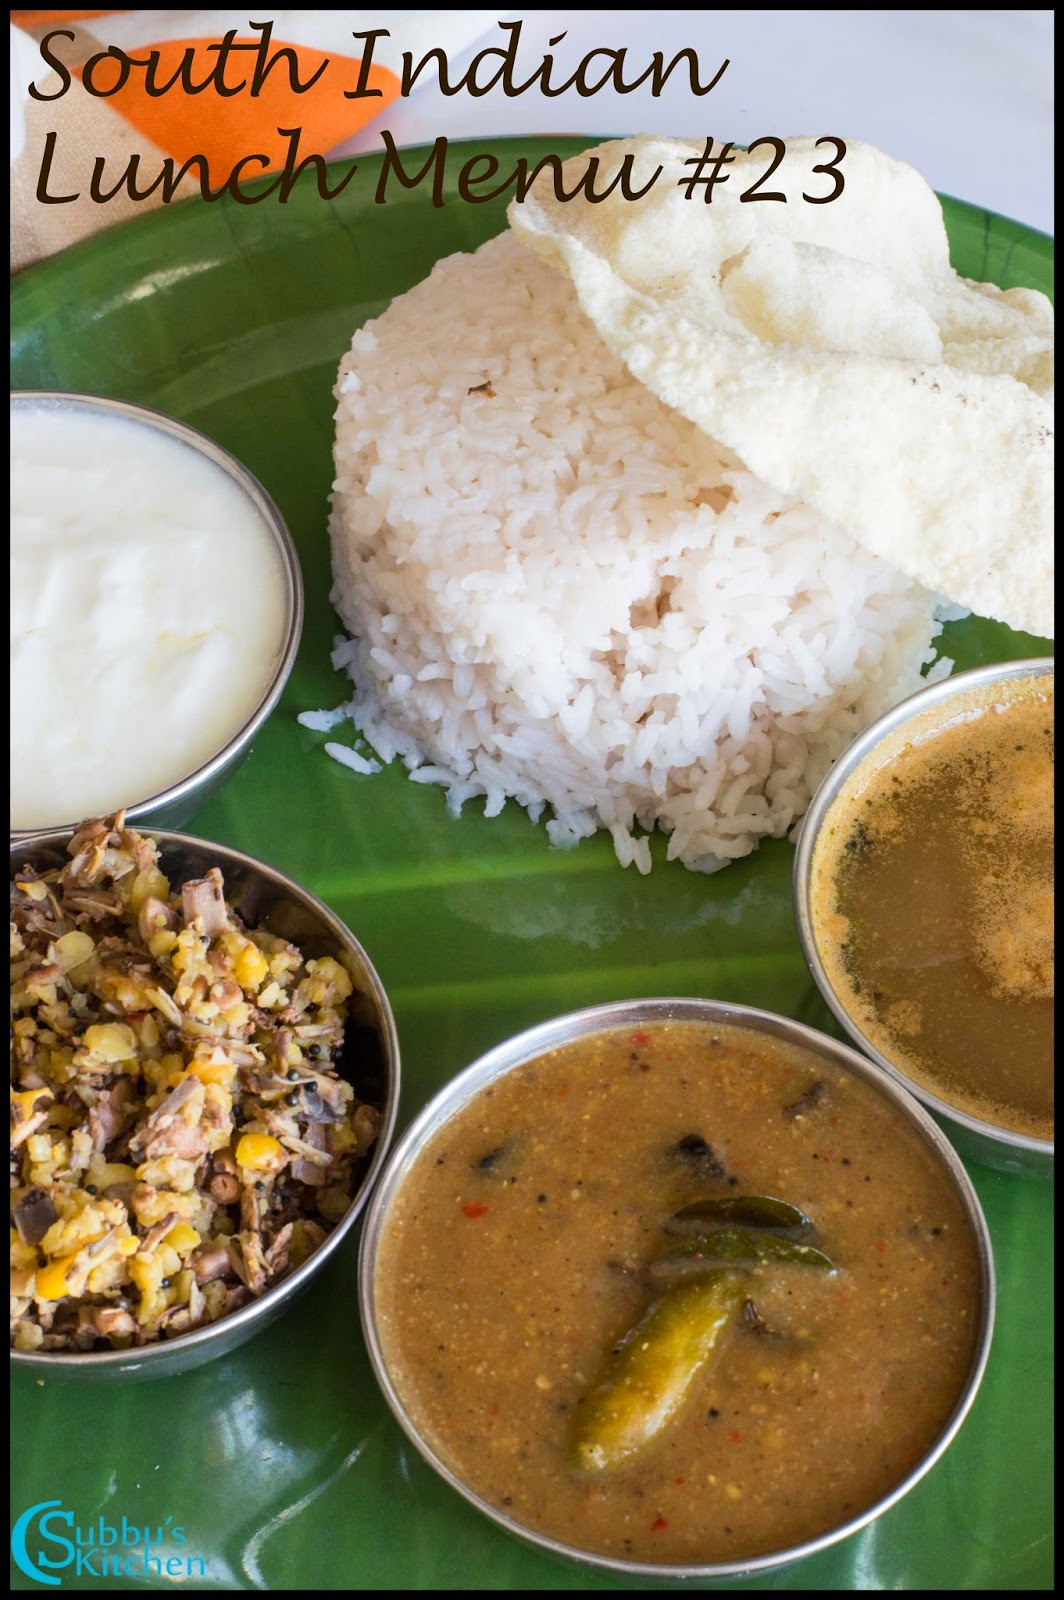 South Indian Lunch Menu 23 - Anjarapetti Kuzhambu, Vazhaipoo Paruppu Usili,Garlic Rasam, Rice, Papad, Pickle